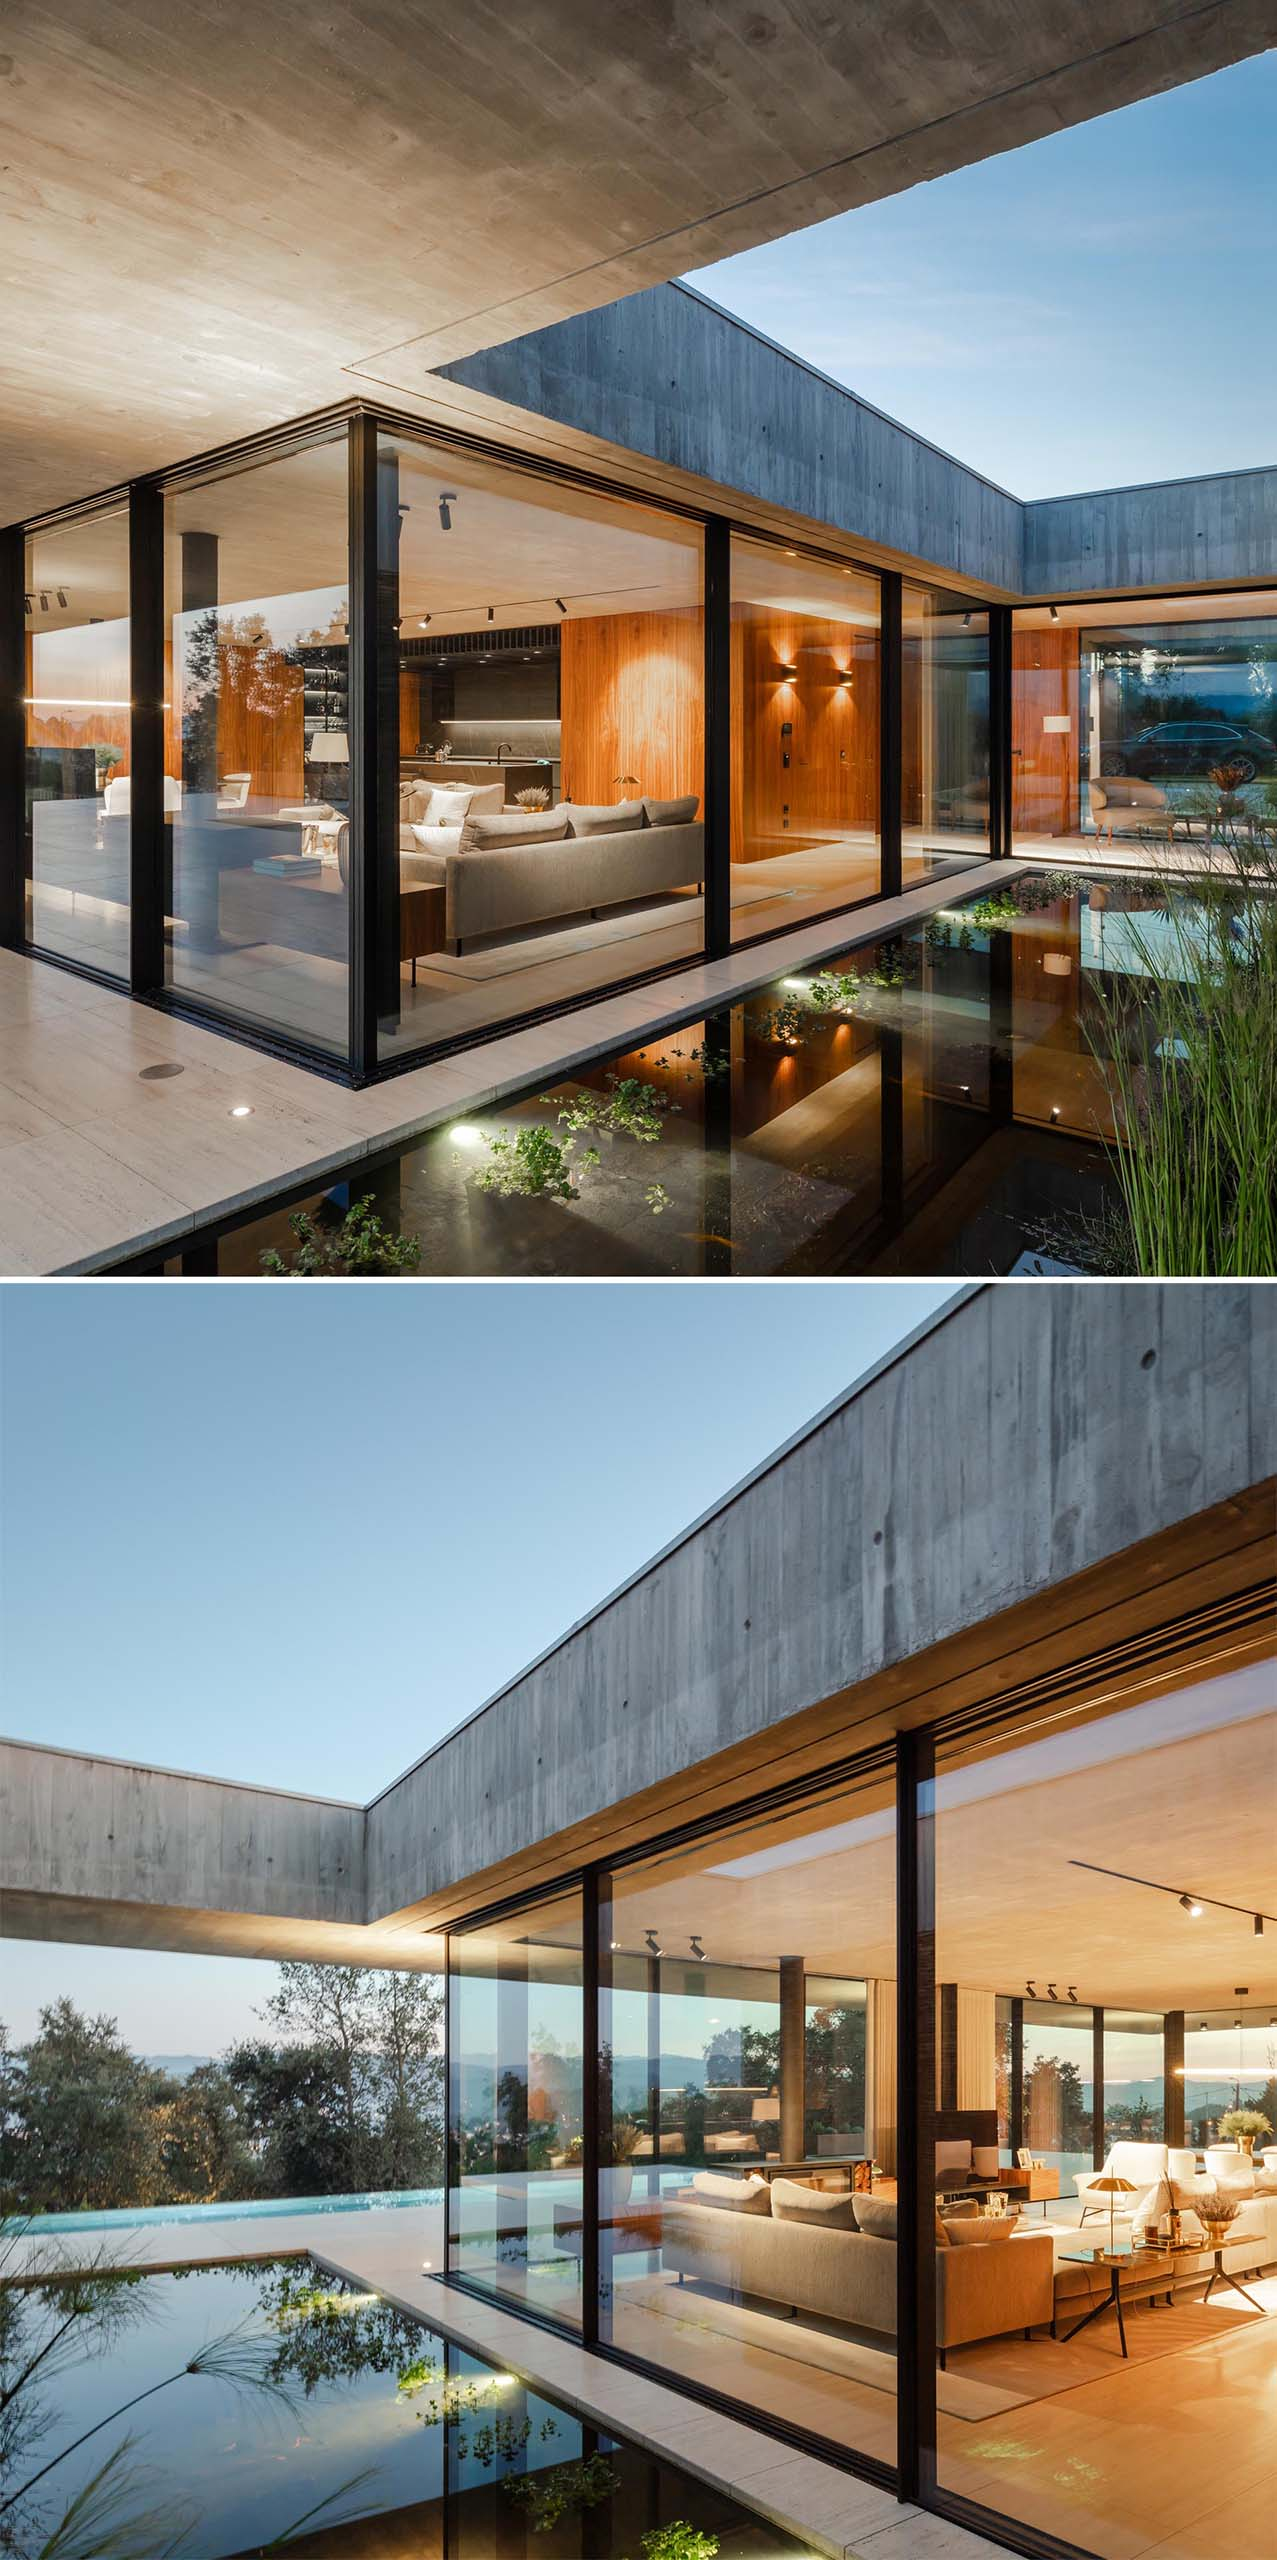 A modern concrete home with glass walls and a water feature.